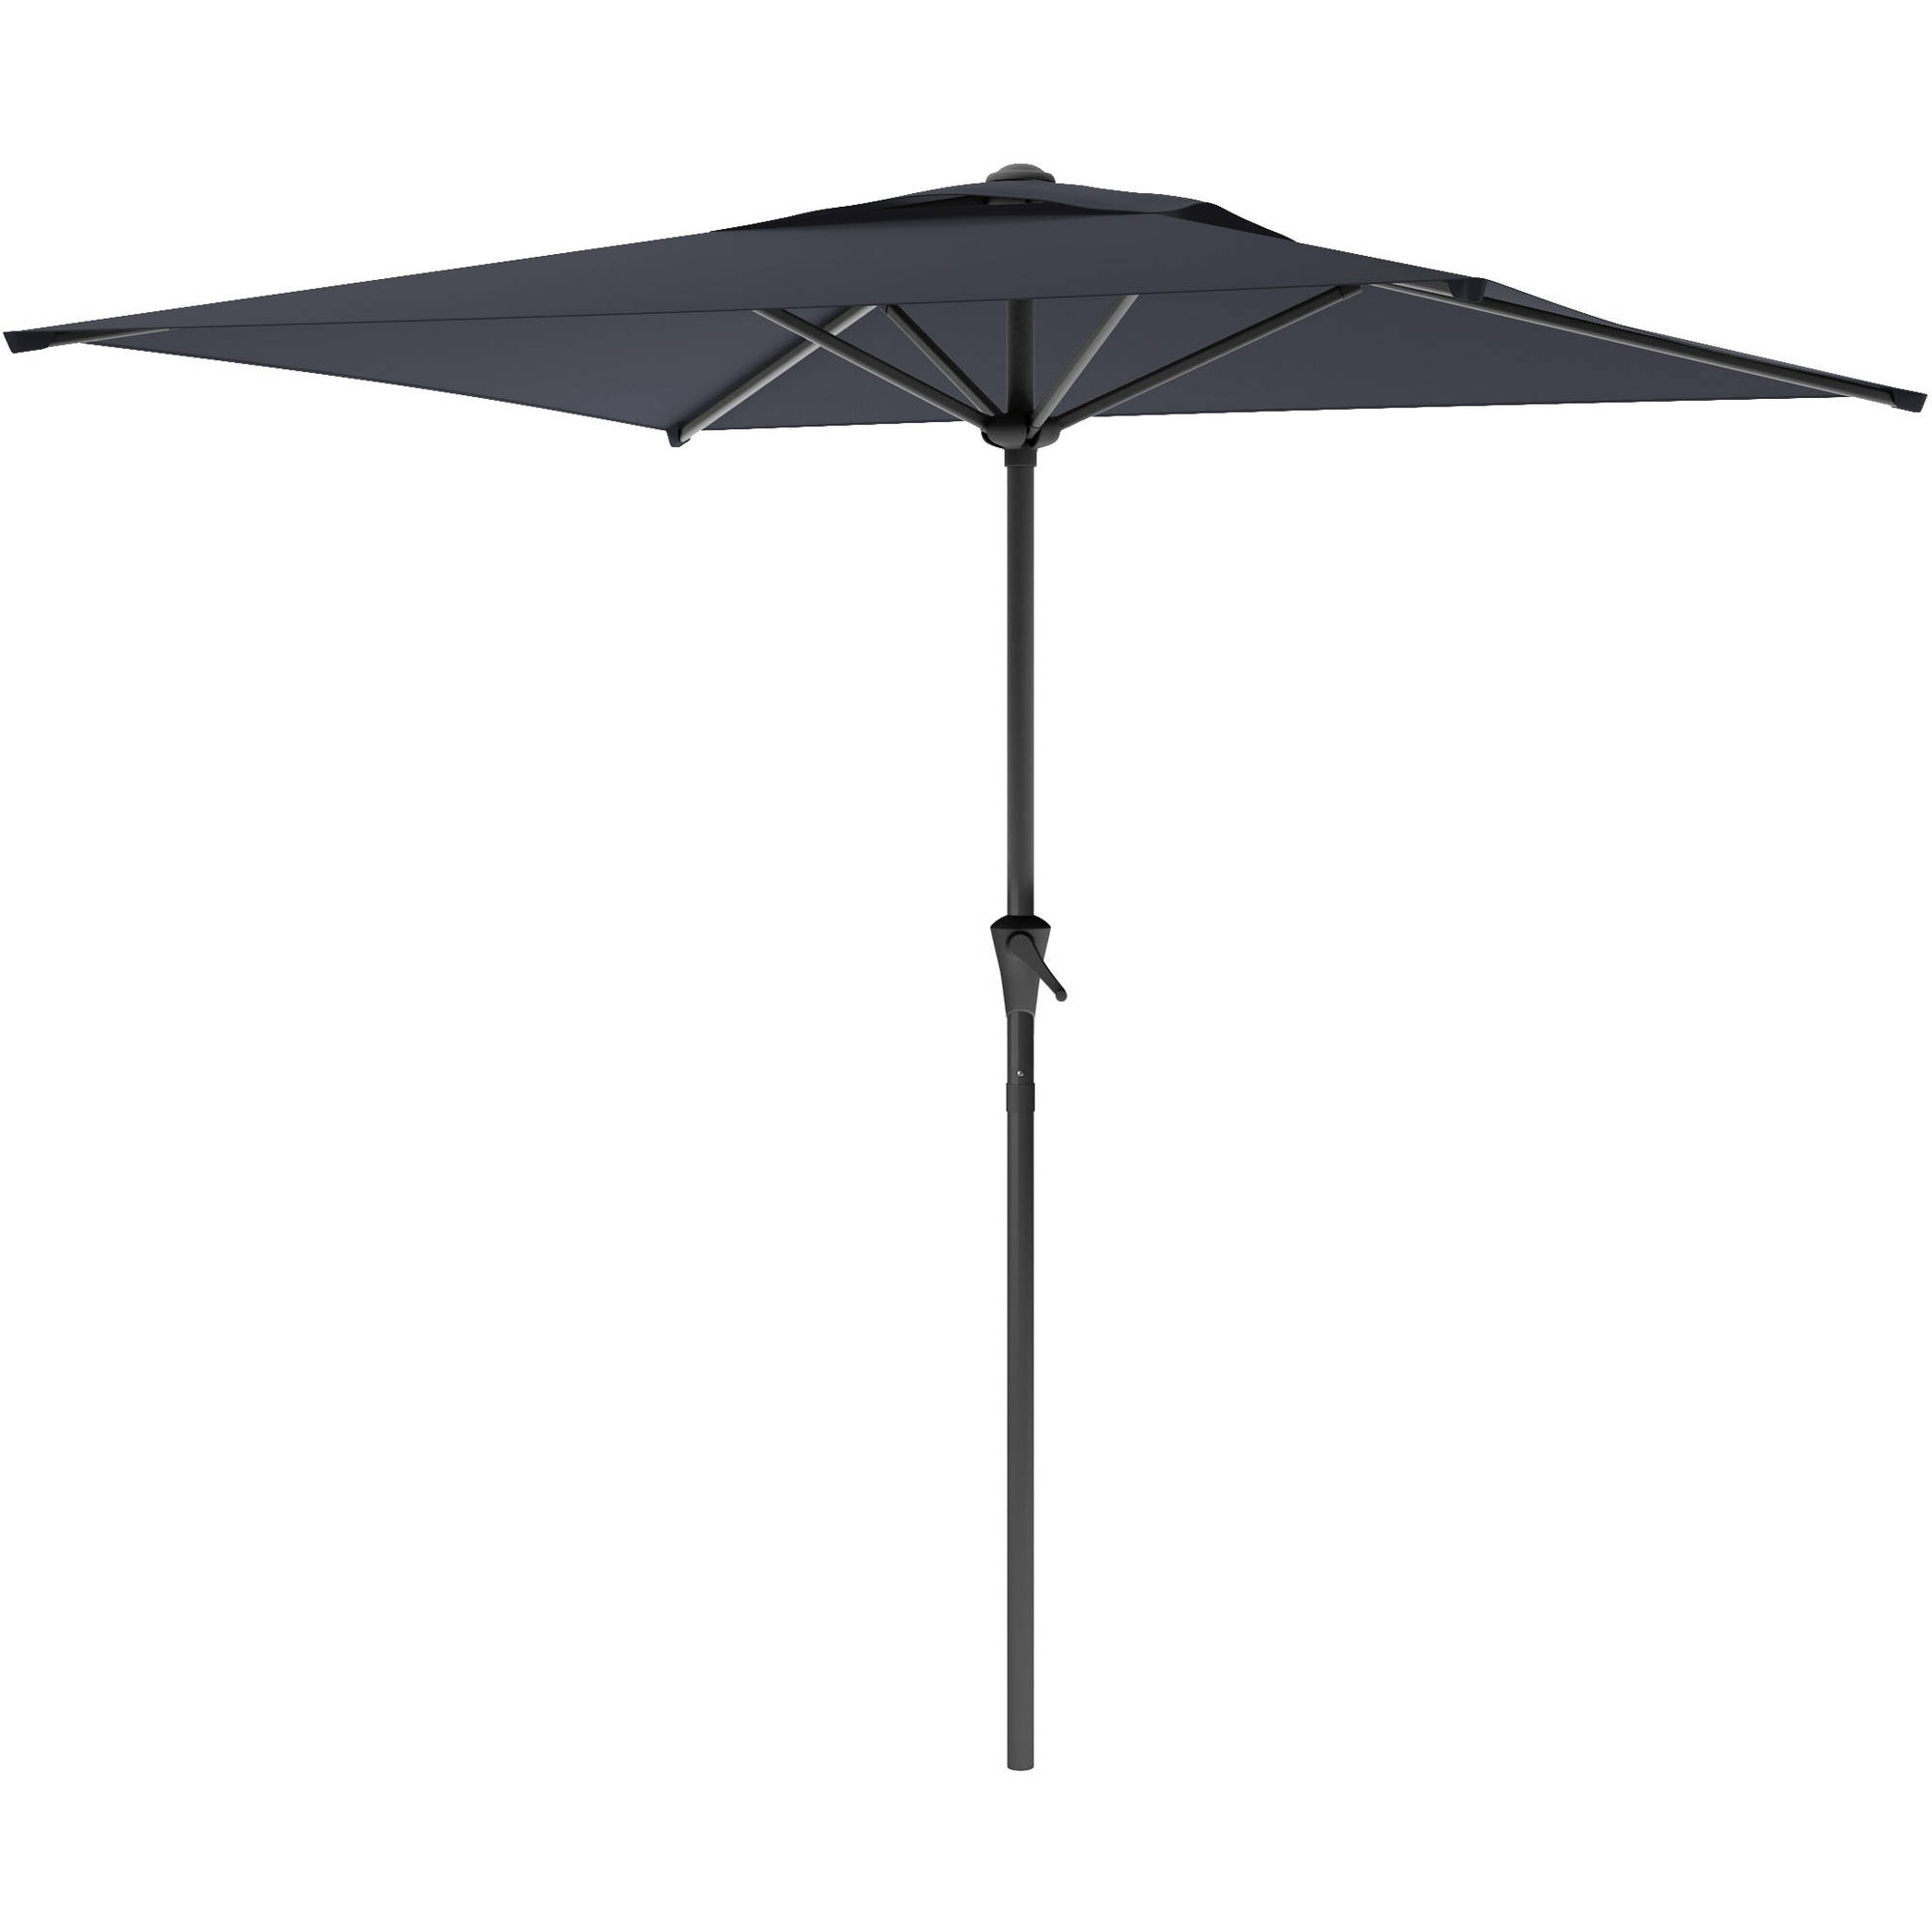 Favorite Sonax Corliving Square Patio Umbrella Metal Umbrellas In Black (View 12 of 20)